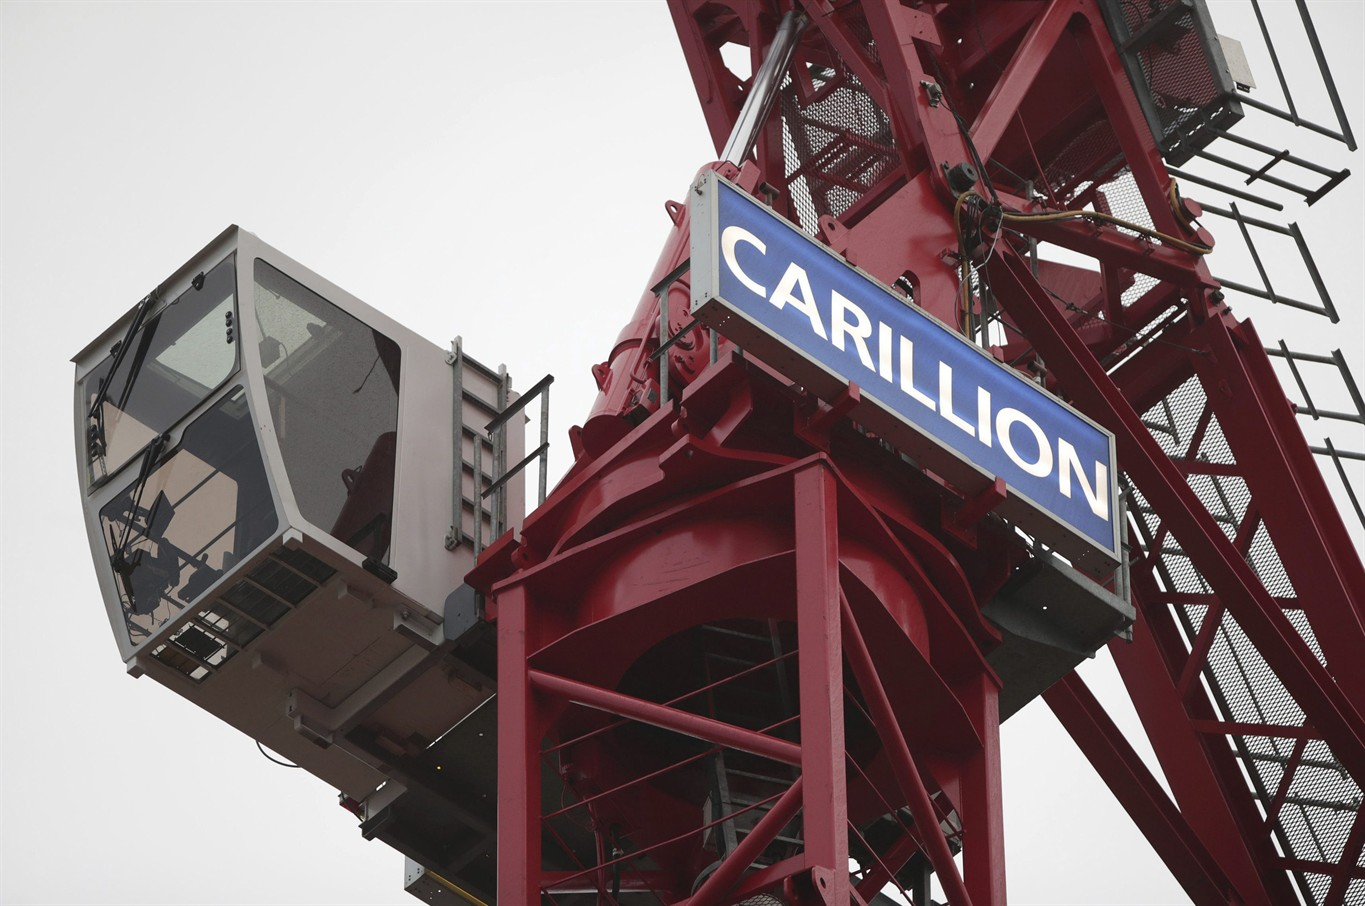 Carillion facing liquidation leaving thousands of jobs at risk